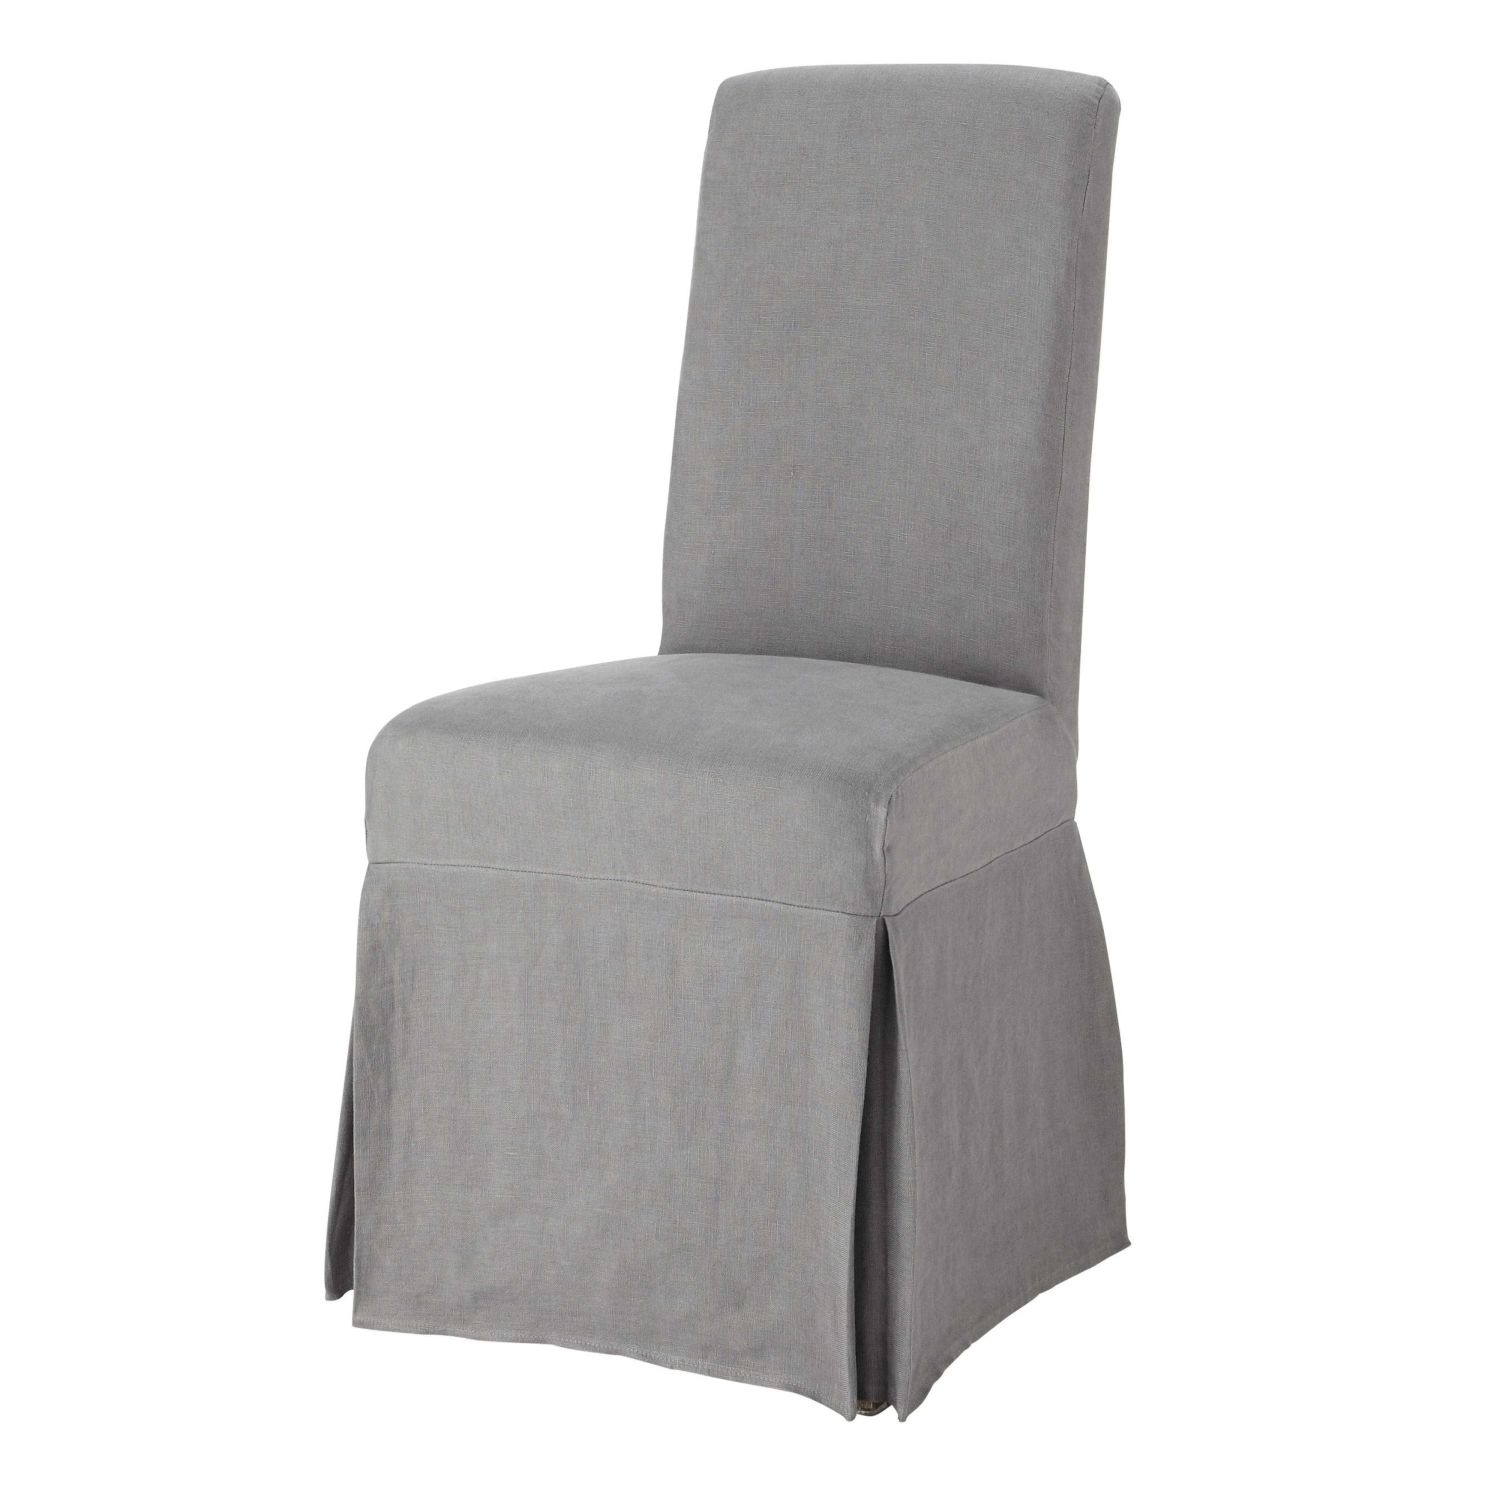 chair leg covers christmas dining seat diy washed linen long cover in grey maisons du monde